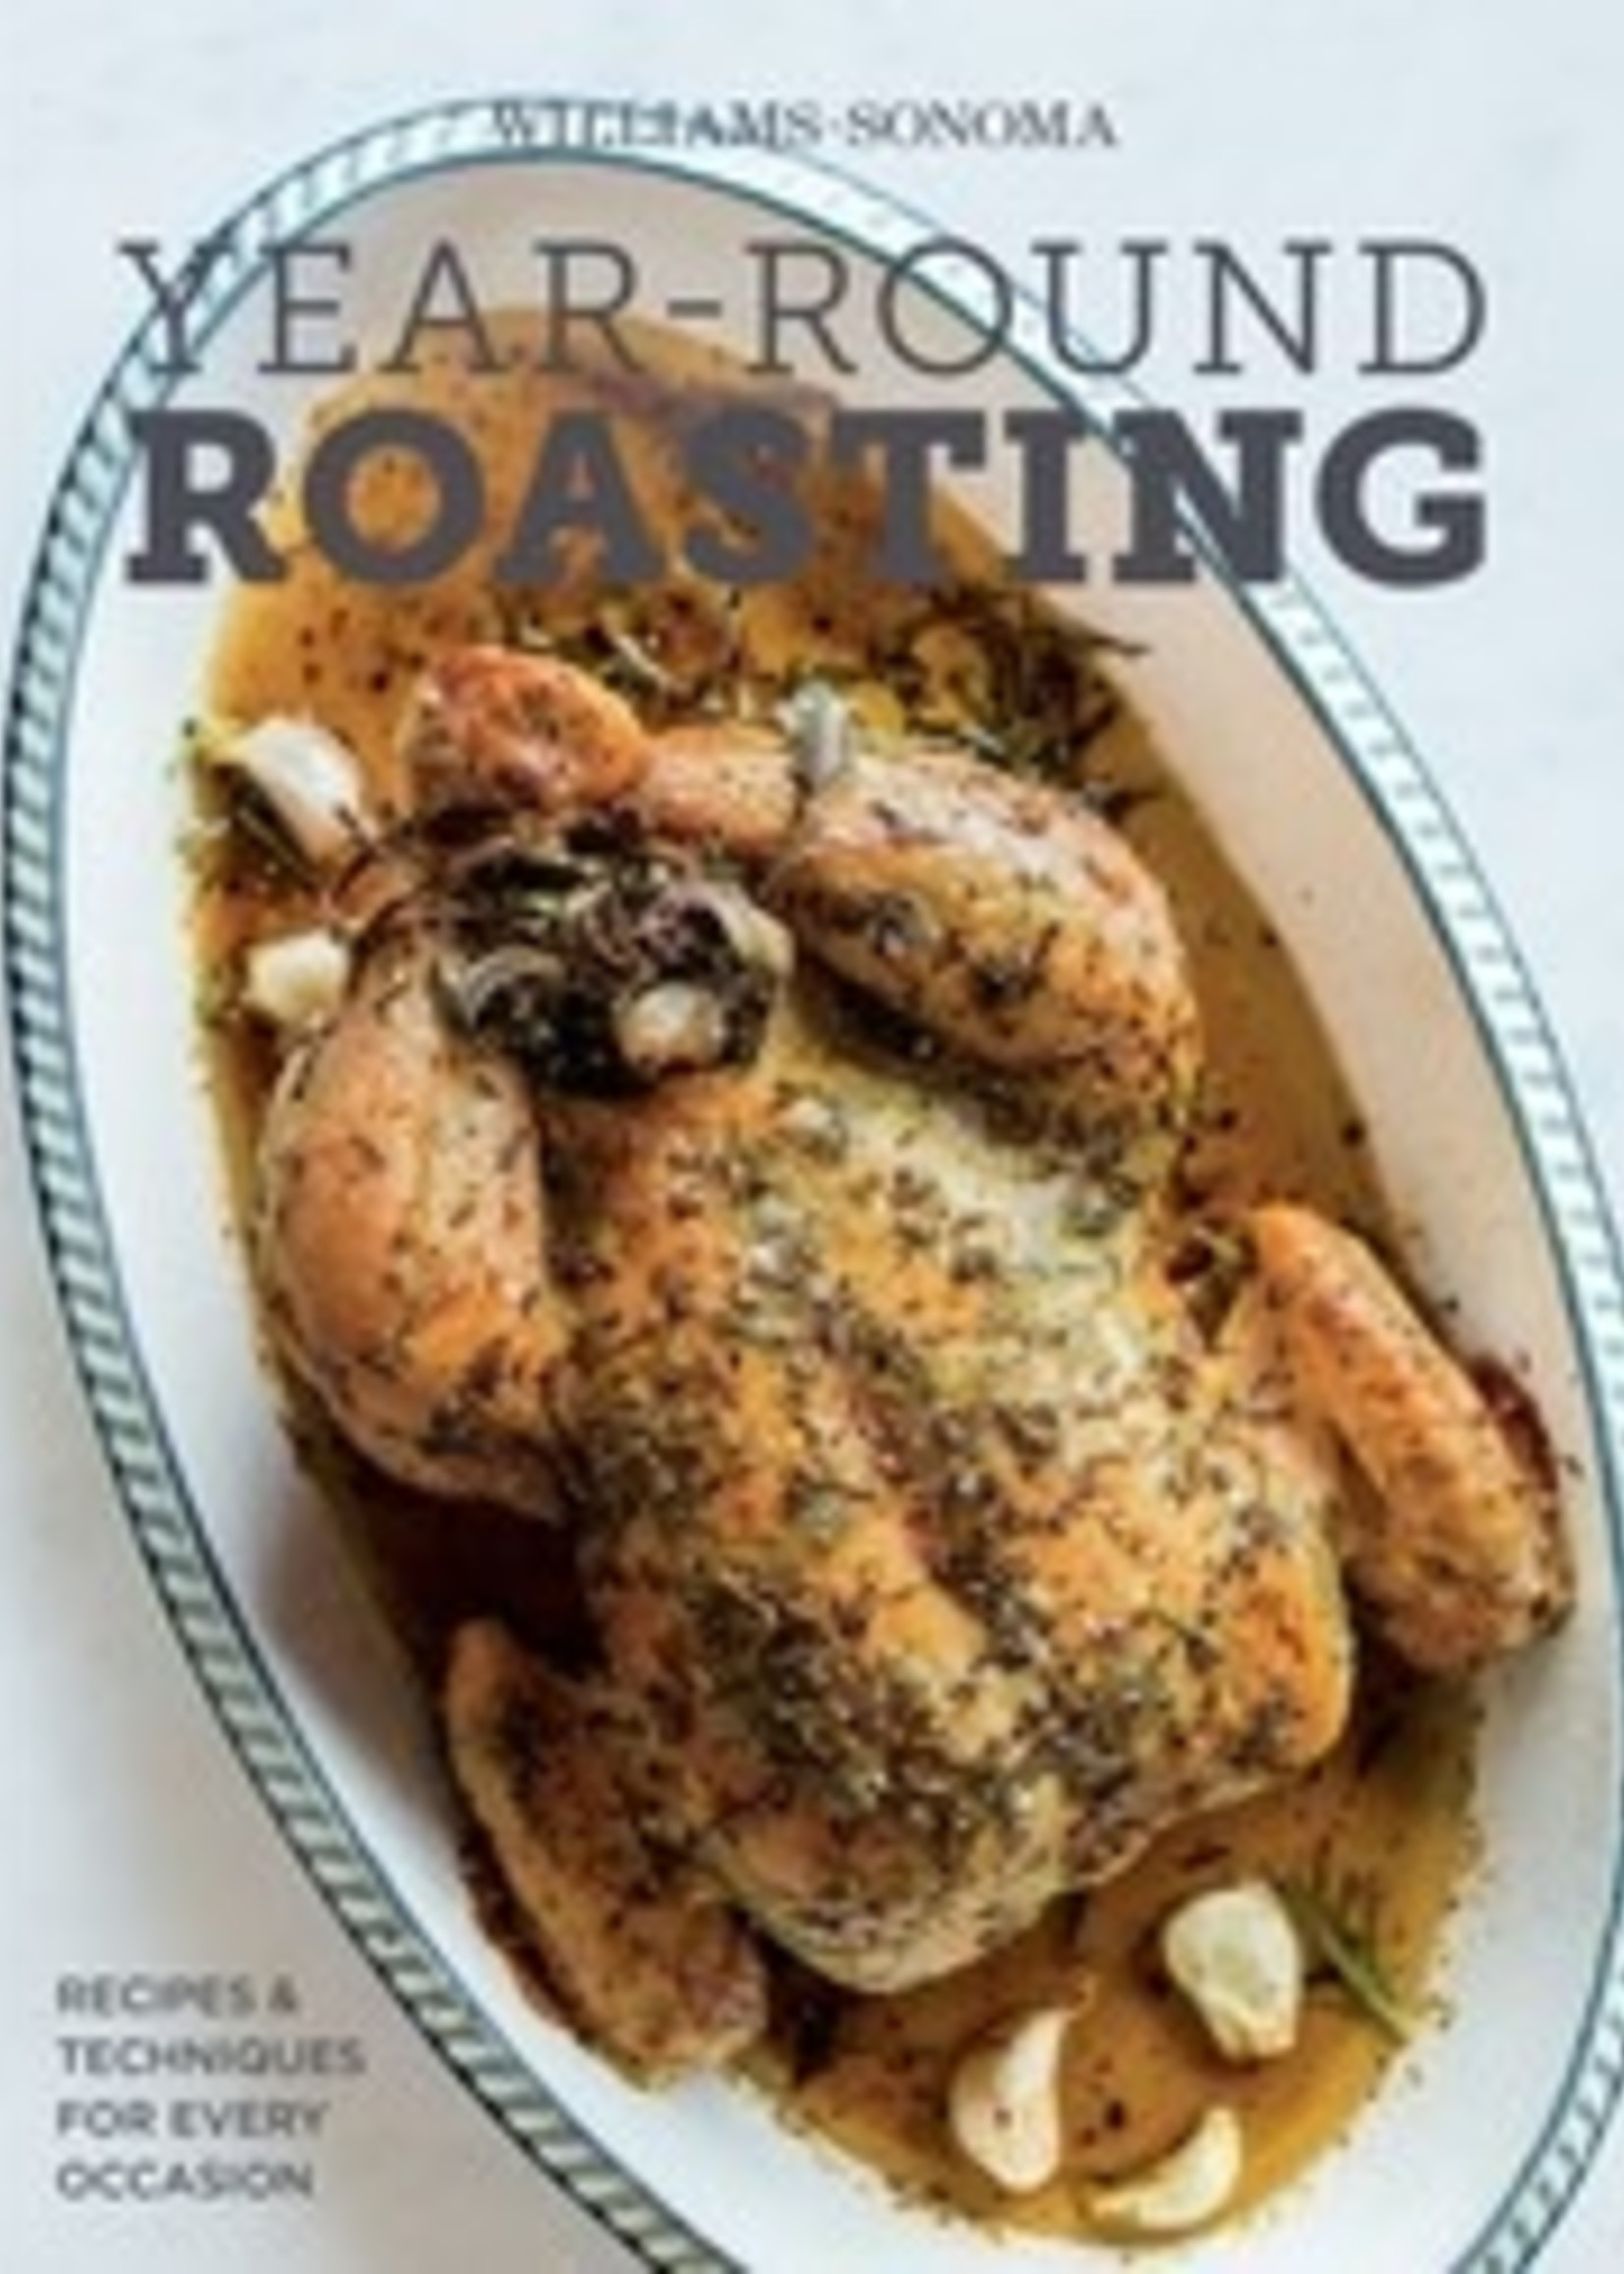 Simon and Schuster Year Round Roasting